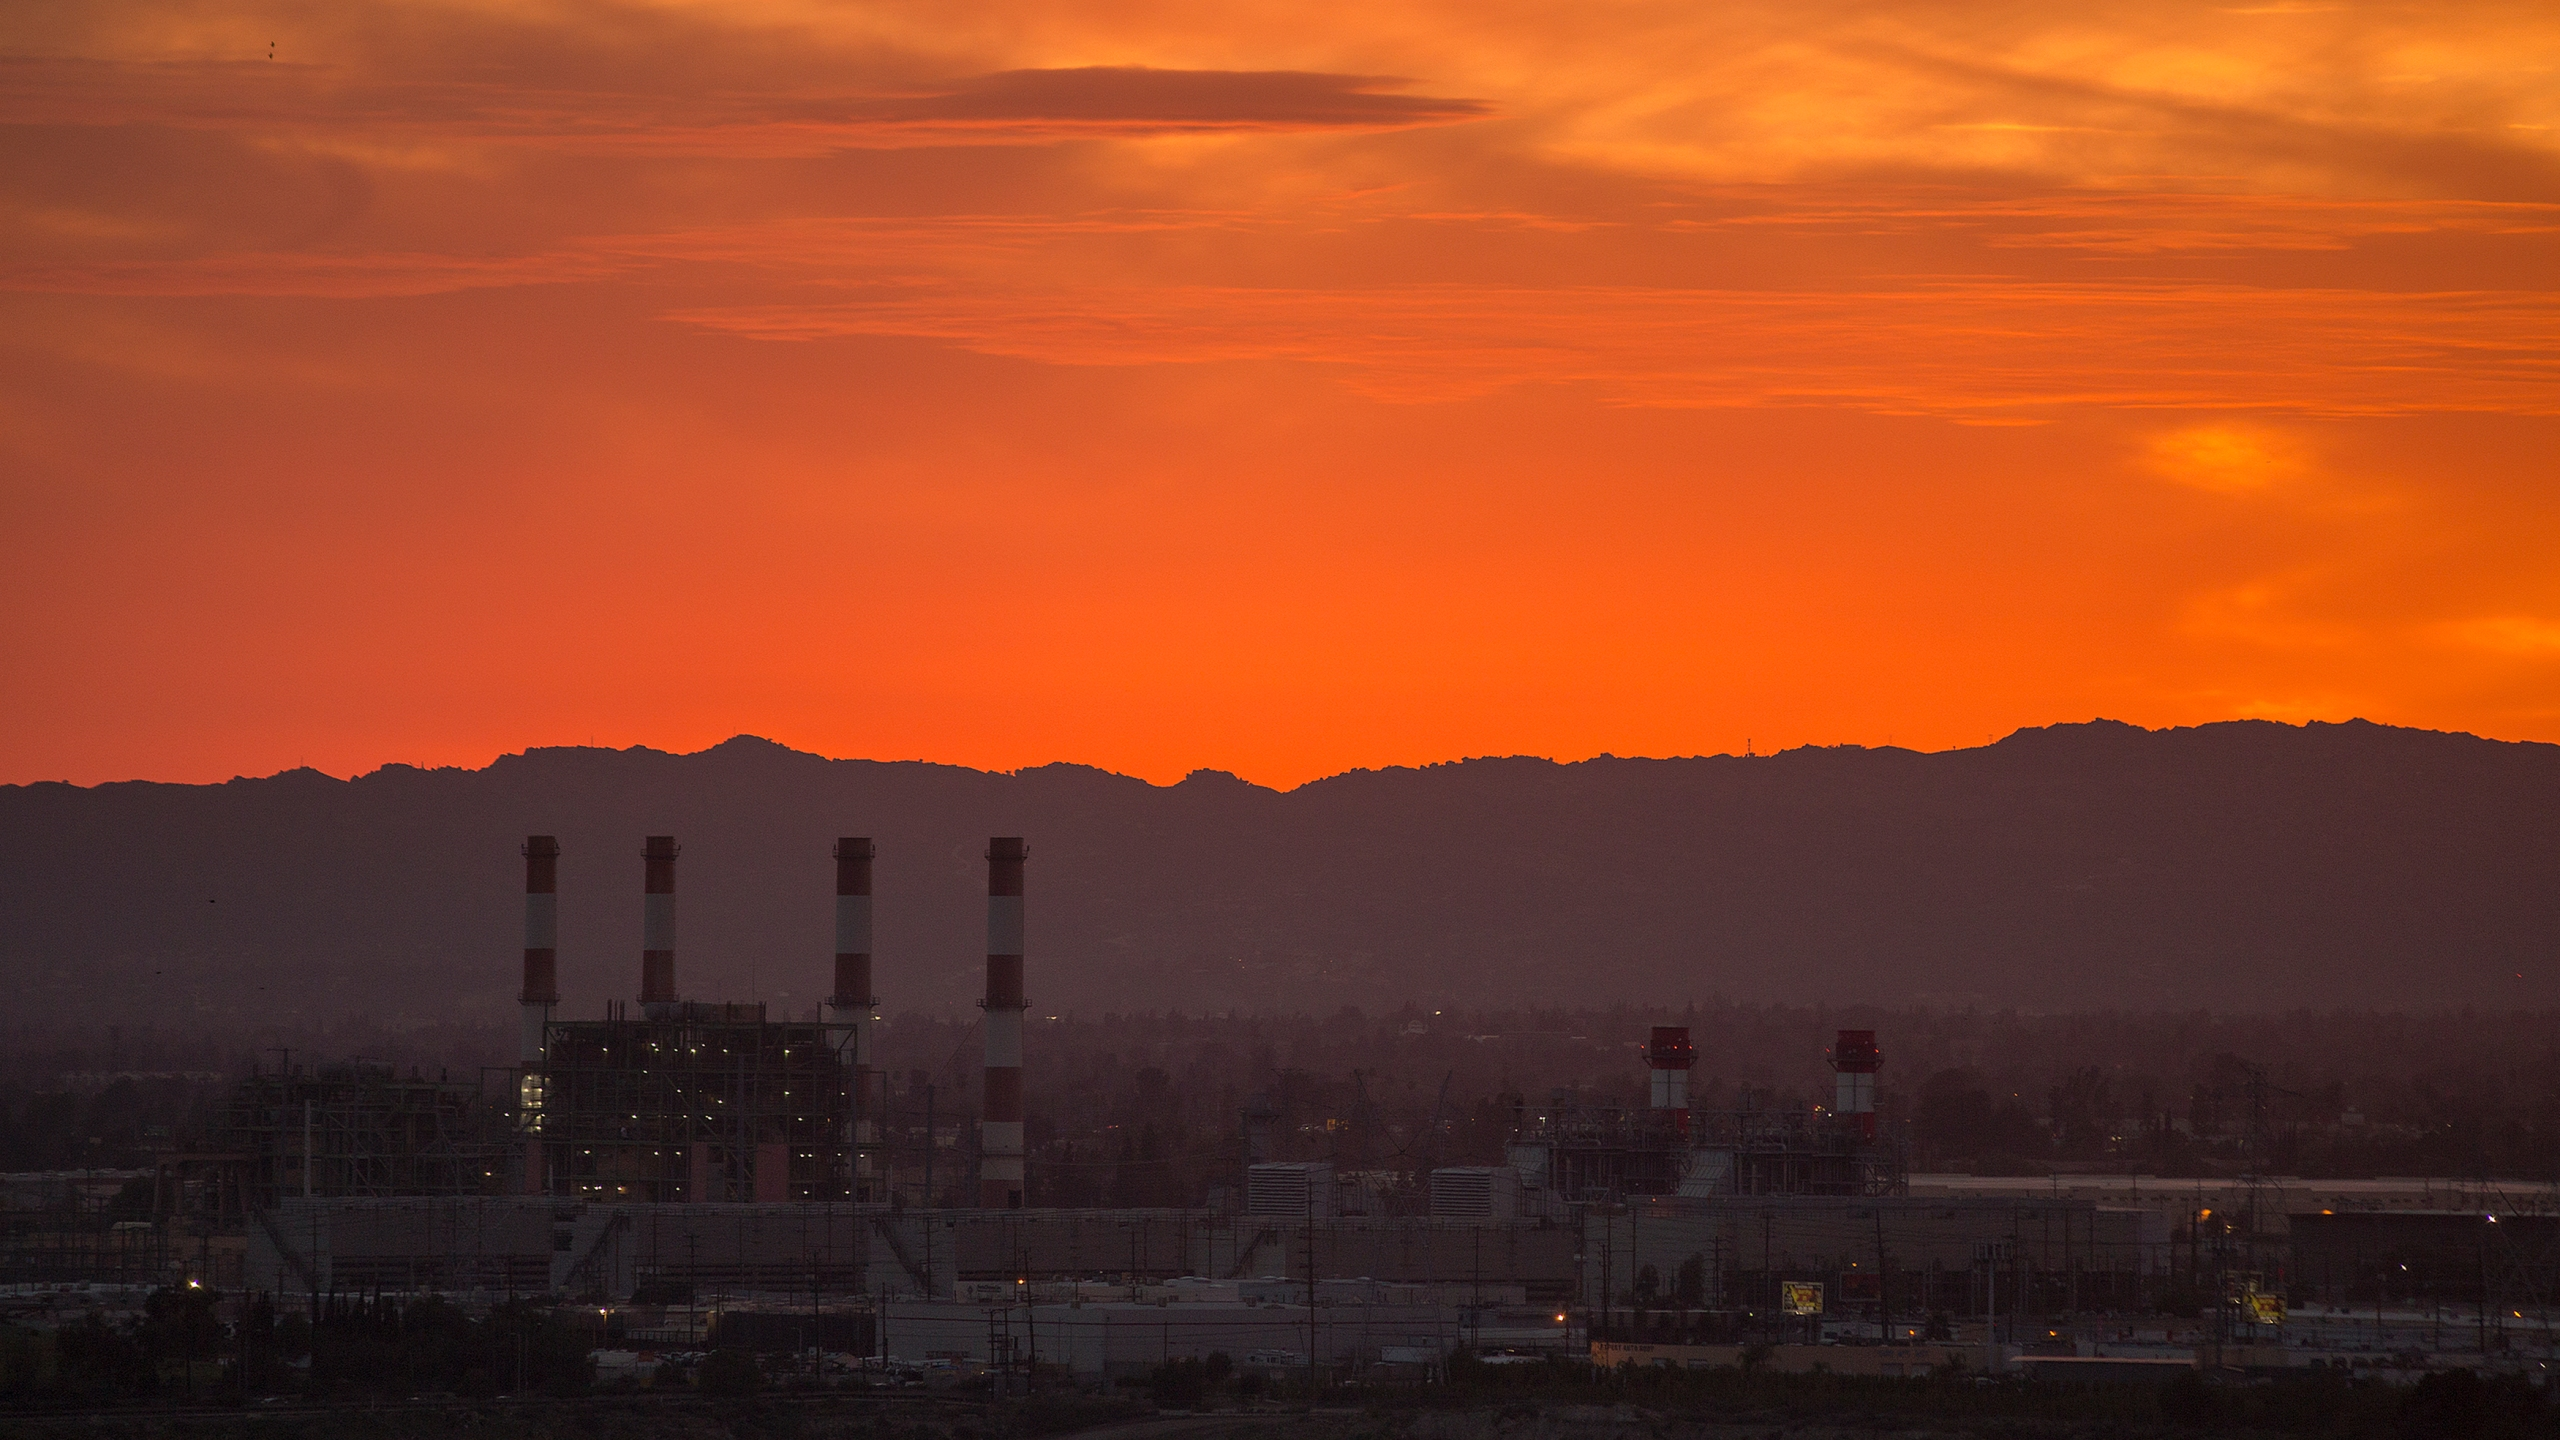 The gas-powered Valley Generating Station is seen in the San Fernando Valley on March 10, 2017 in Sun Valley, California. (Credit: David McNew/Getty Images)